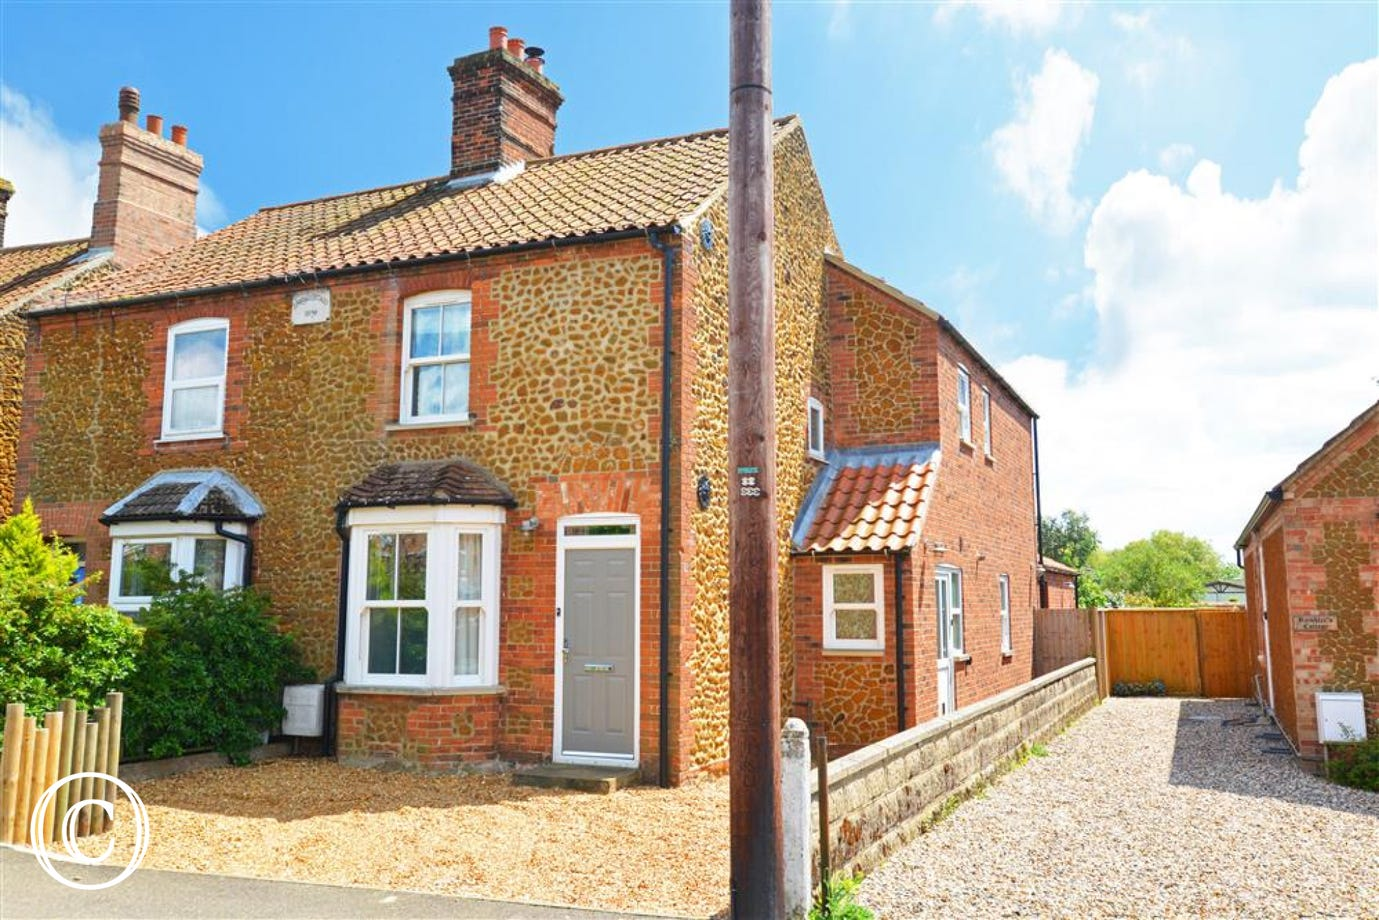 Exterior image of this traditional brick and carrstone cottage